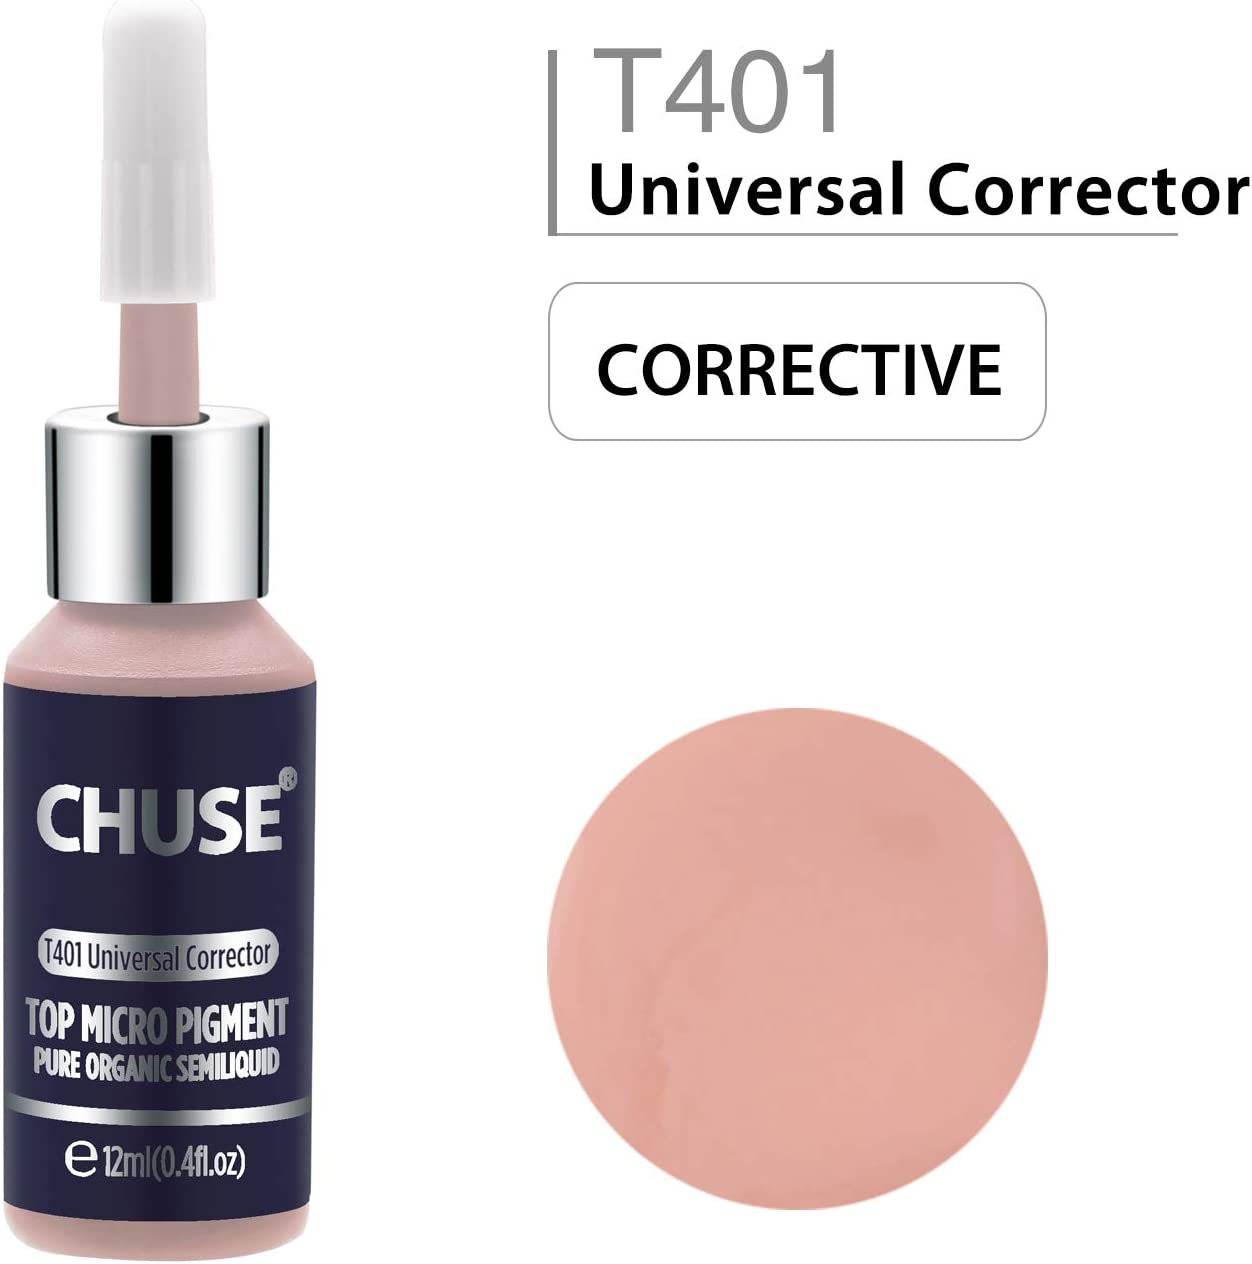 CHUSE T401, 12ml, Universal Corrector, Passed SGS,DermaTest Top Micro Pigment Cosmetic Color Permanent Makeup Tattoo Ink